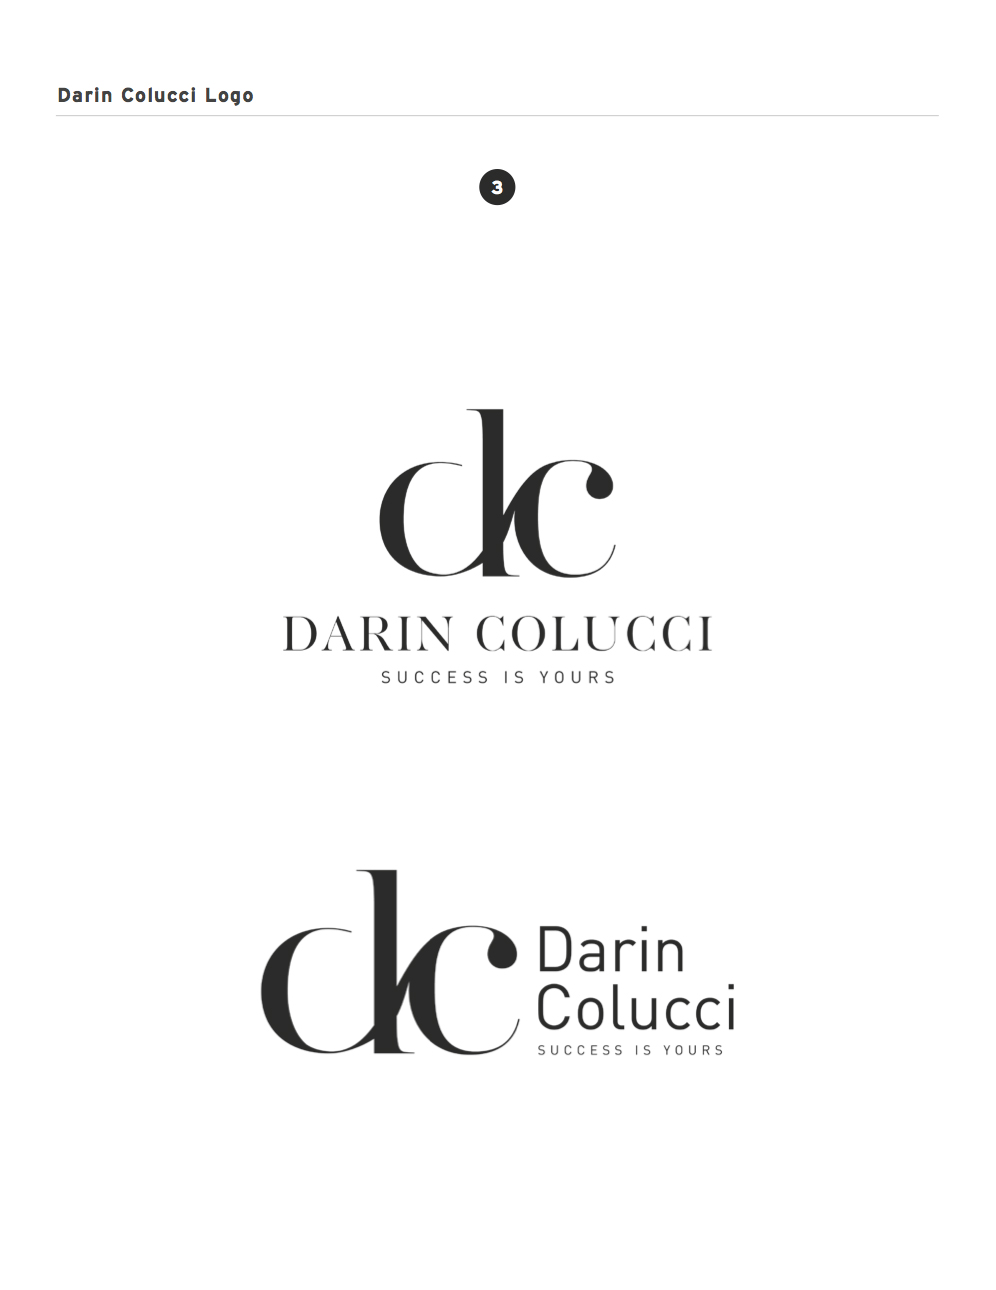 Darin Colucci Logo Options